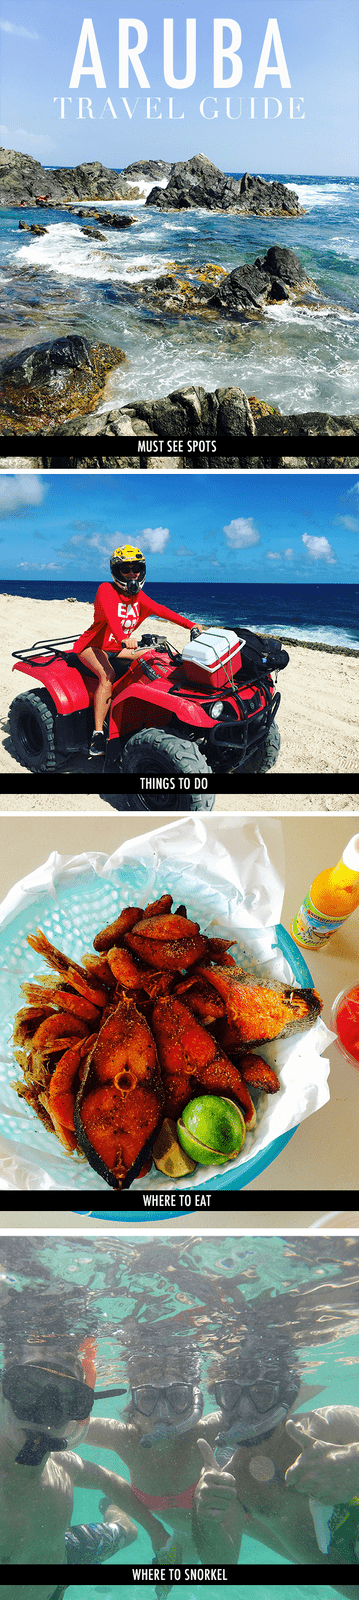 The Ultimate Aruba Travel Guide! Places to see, things to do, where to eat and where to snorkel.